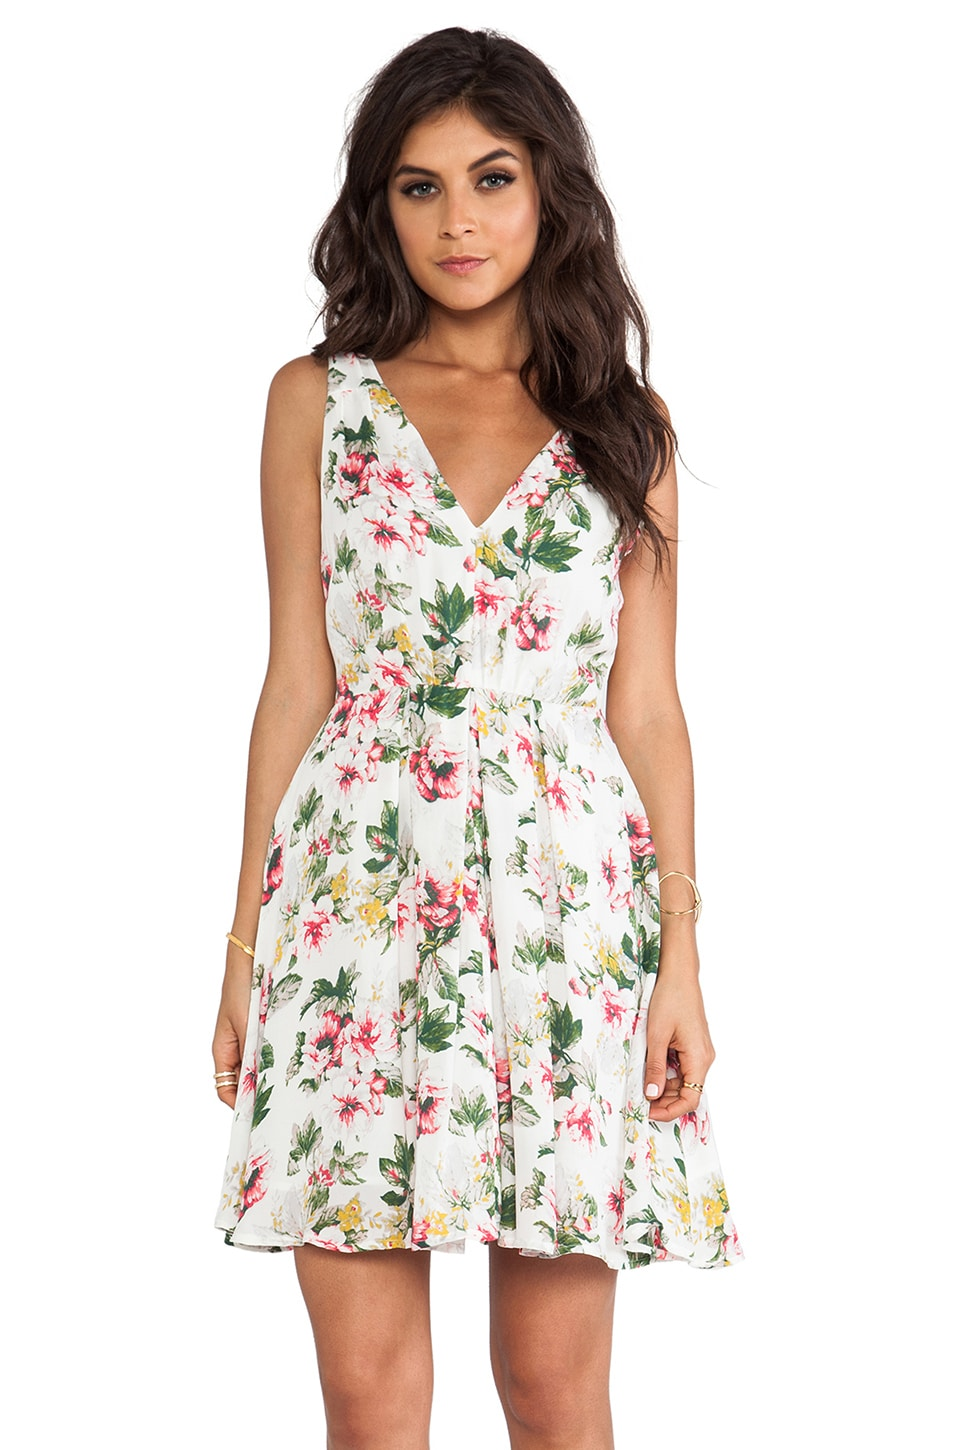 Joie Haliah Cabbage Rose Dress in Porcelain